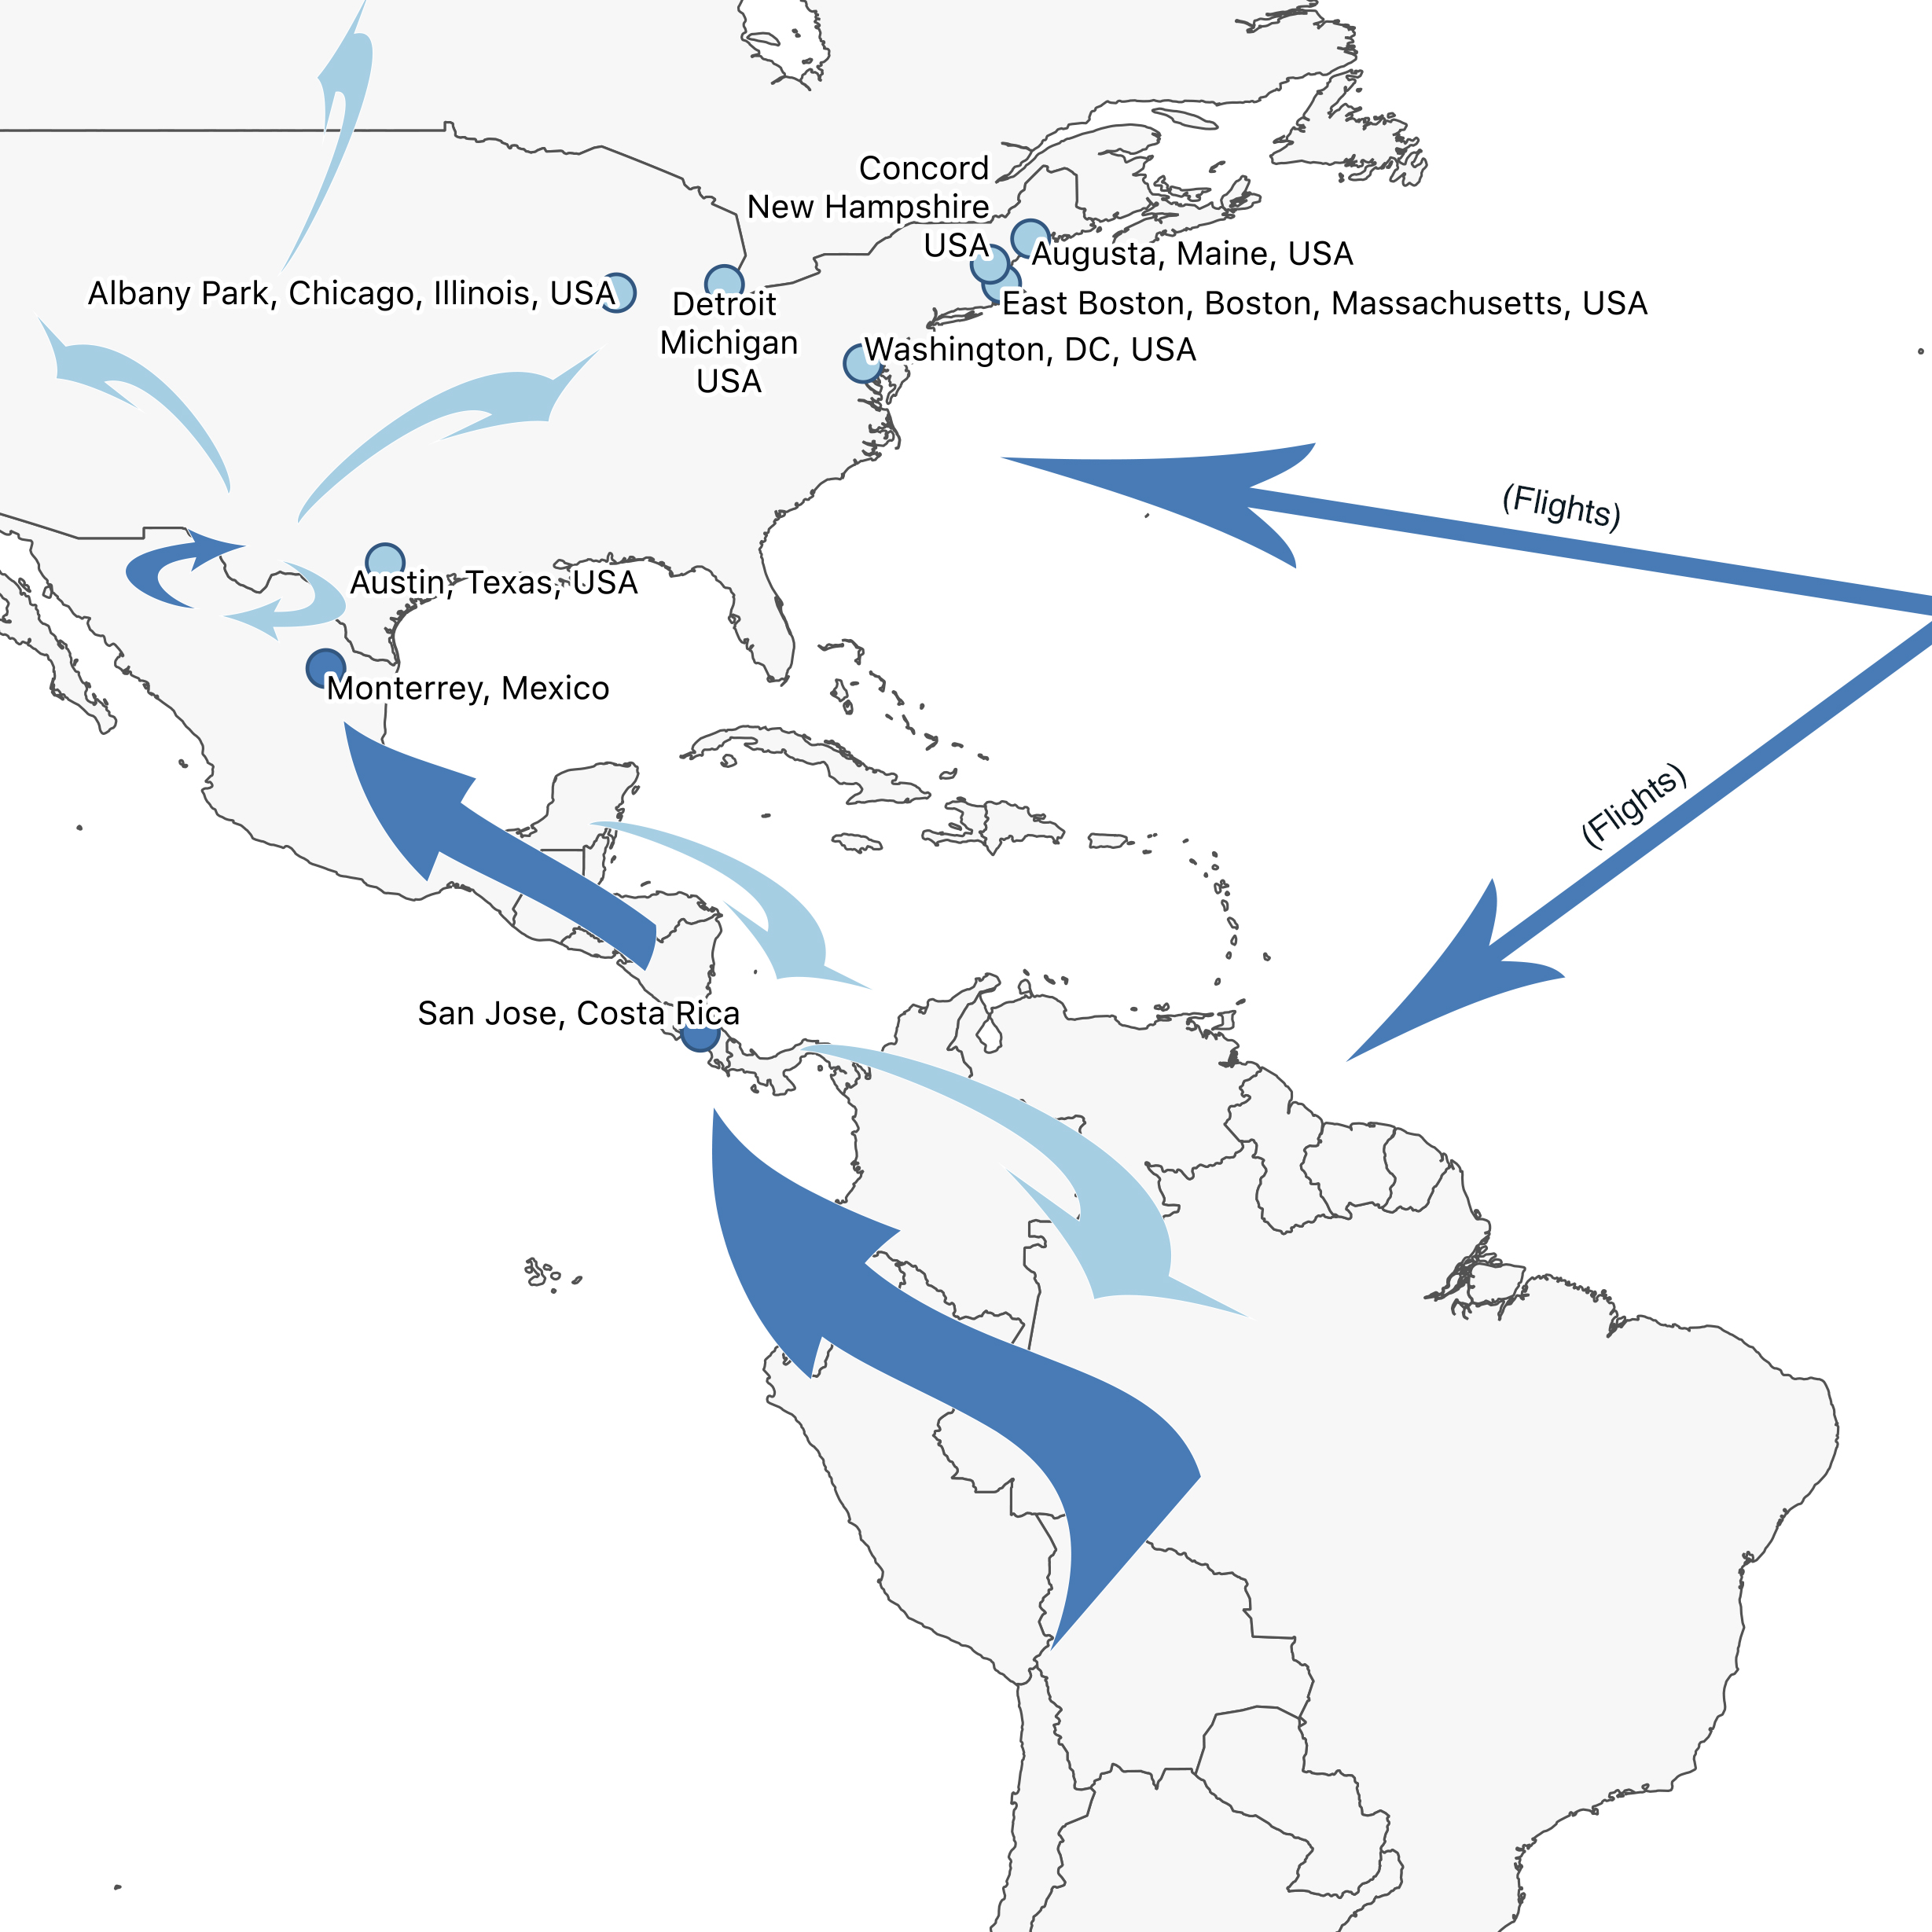 Concord is both a destination city and a point of onward migration along the Americas route. Click the map to learn more about the route, and to read other RIT reports from cities and towns linked together by these movements of people.